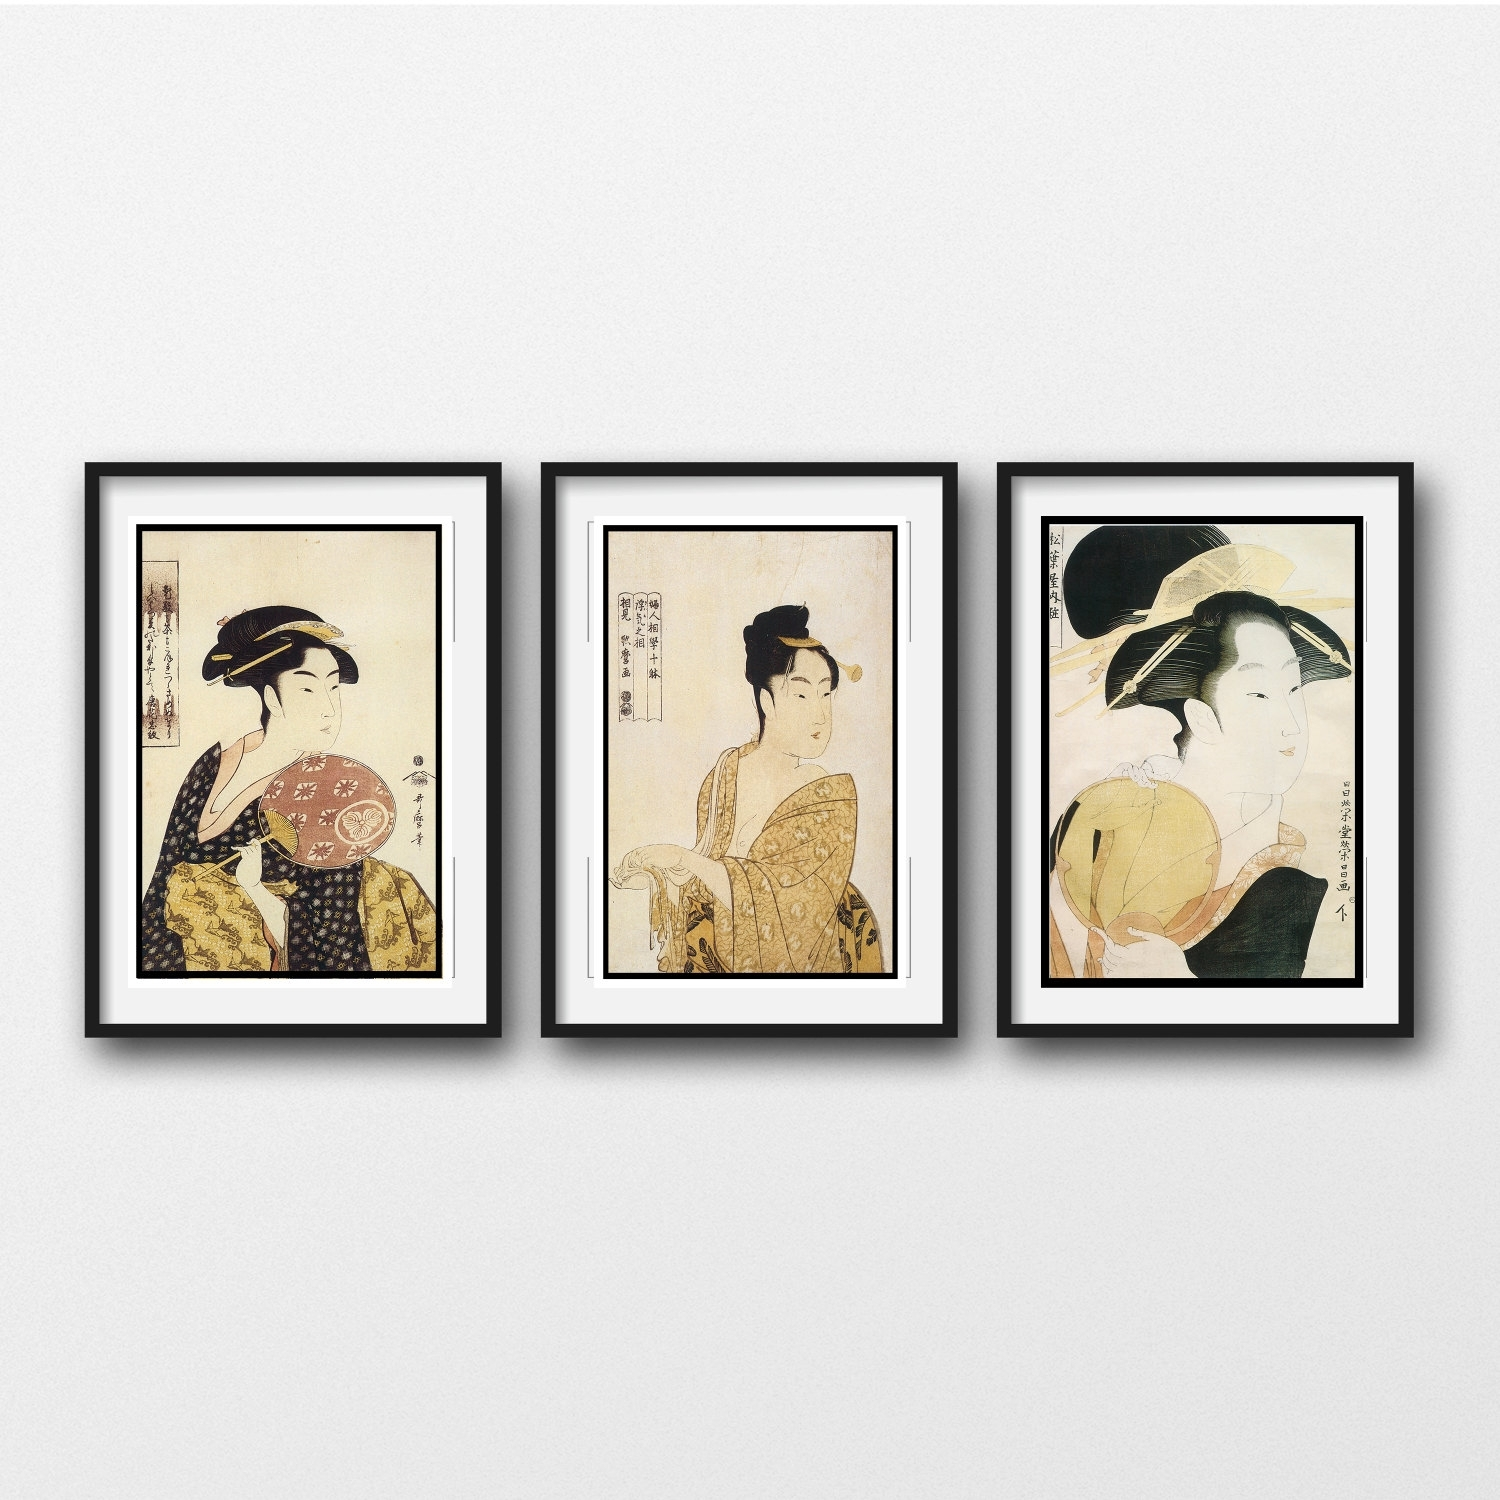 3 Piece Wall Art – Vintage Japanese Prints Matted And Framed For Most Current Black Framed Art Prints (View 8 of 15)